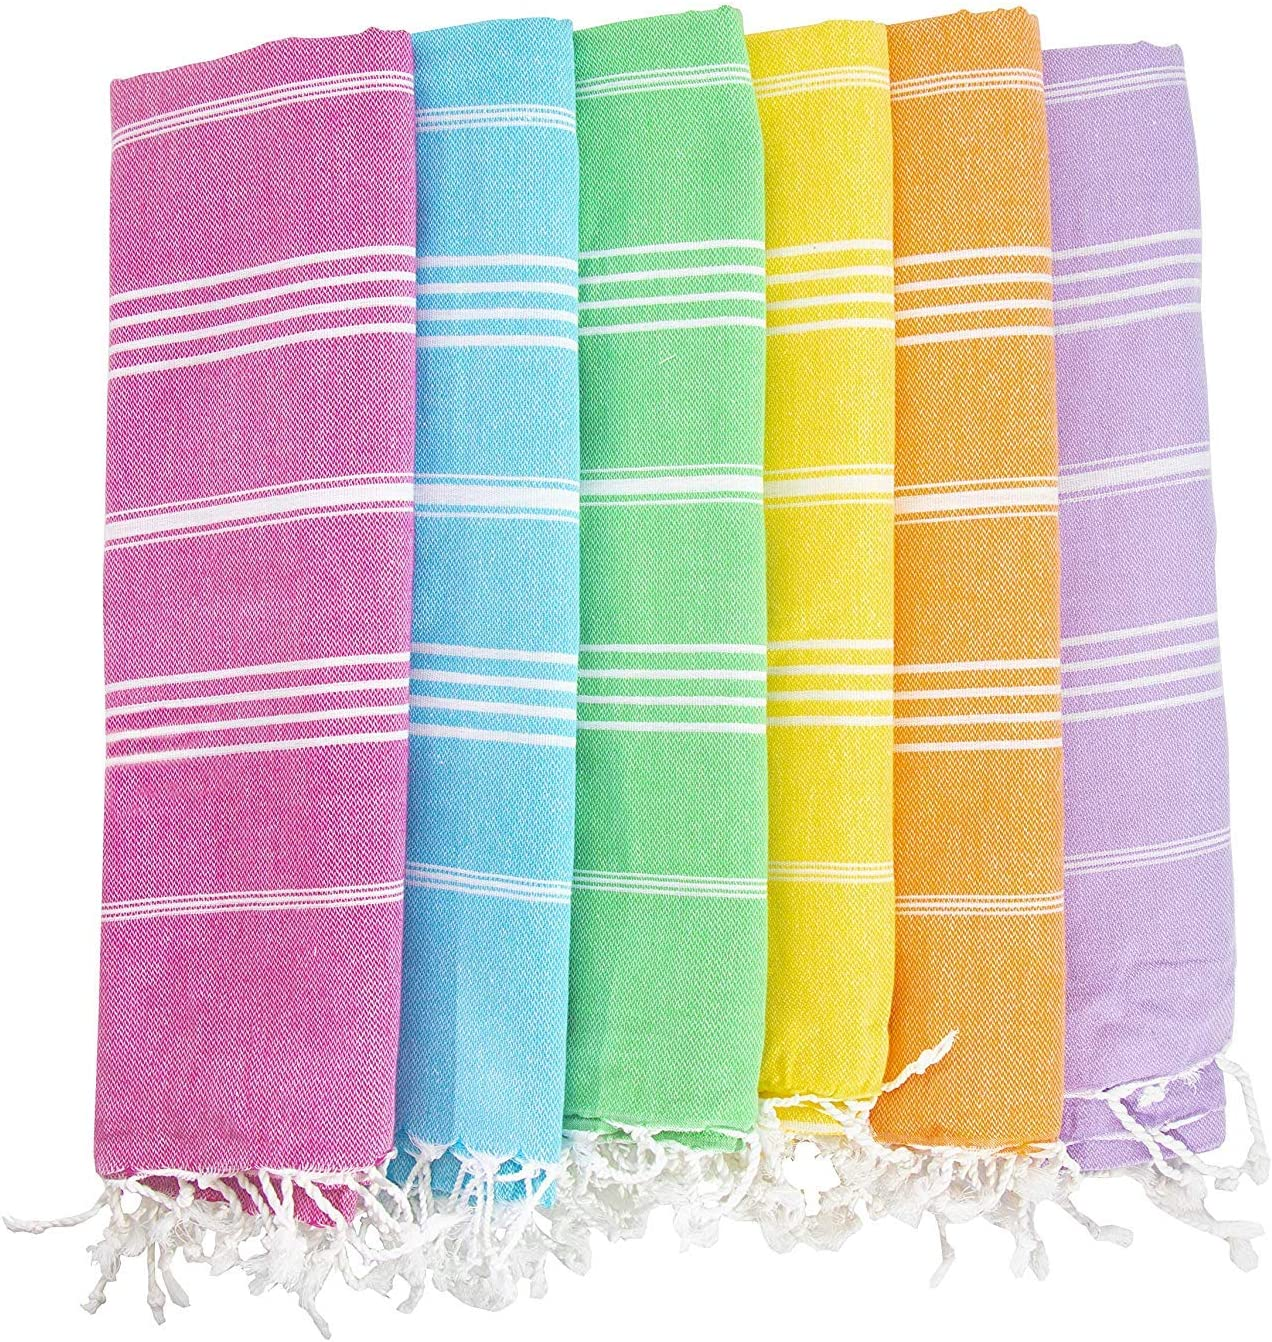 HAVLULAND (Set of 6 100% Turkish Cotton Beach Pool Towel Absorbent